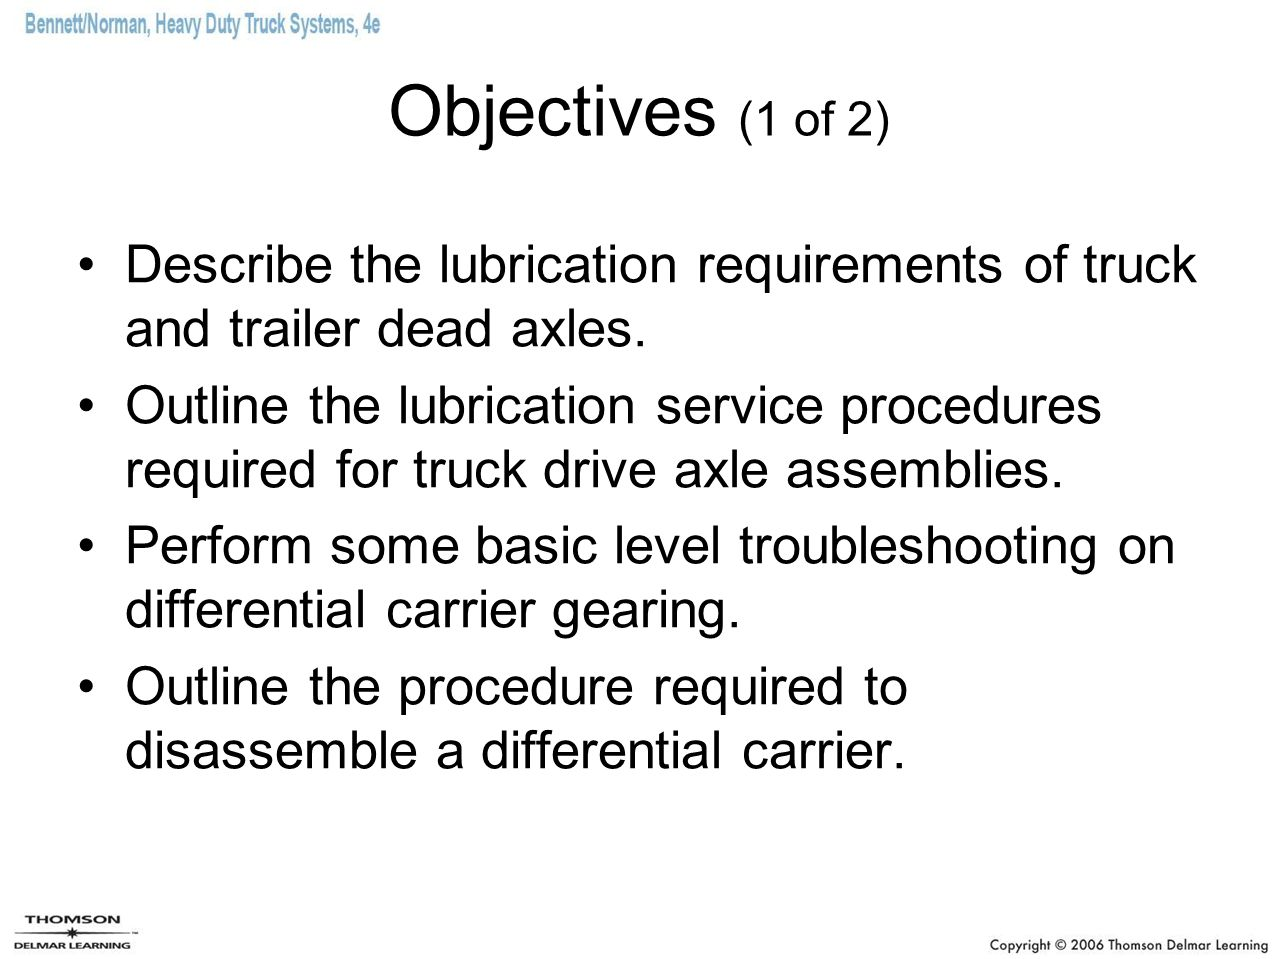 Objectives (1 of 2) Describe the lubrication requirements of truck and trailer dead axles.